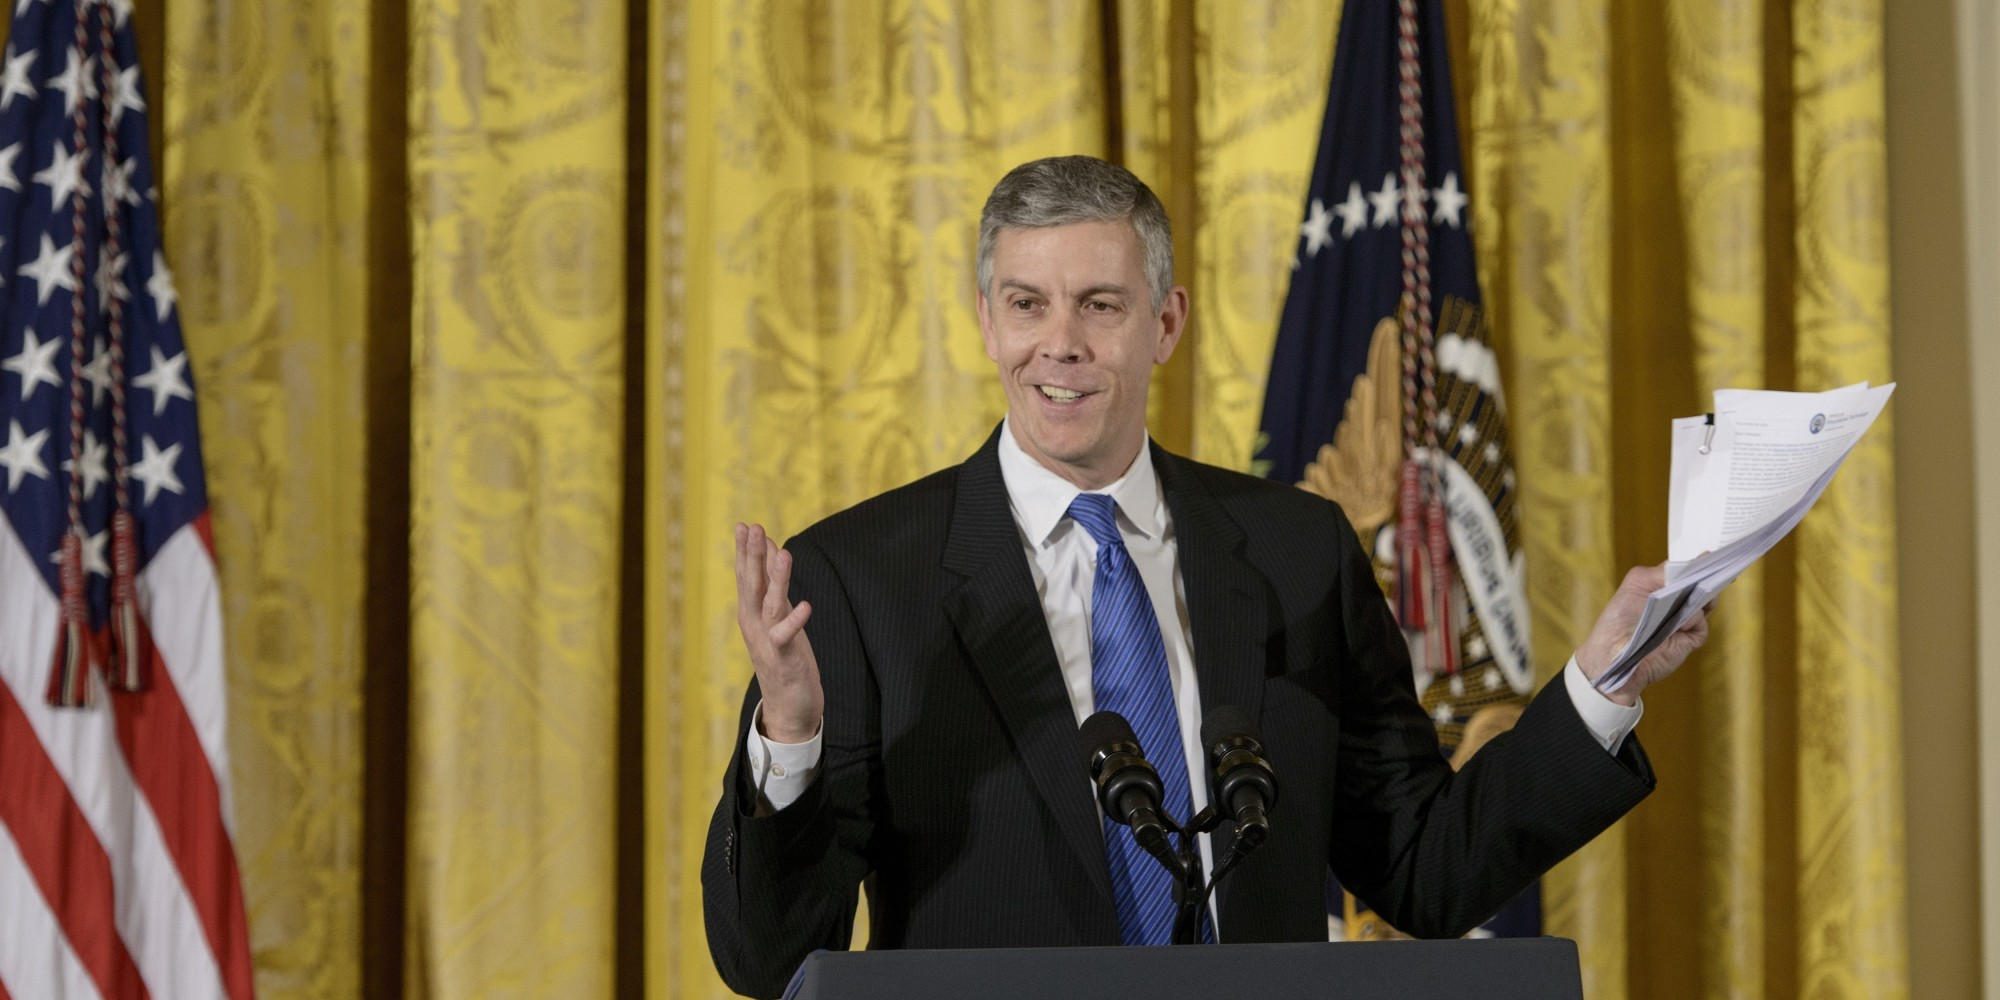 arne duncan thrilled to close corinthian colleges not so ready